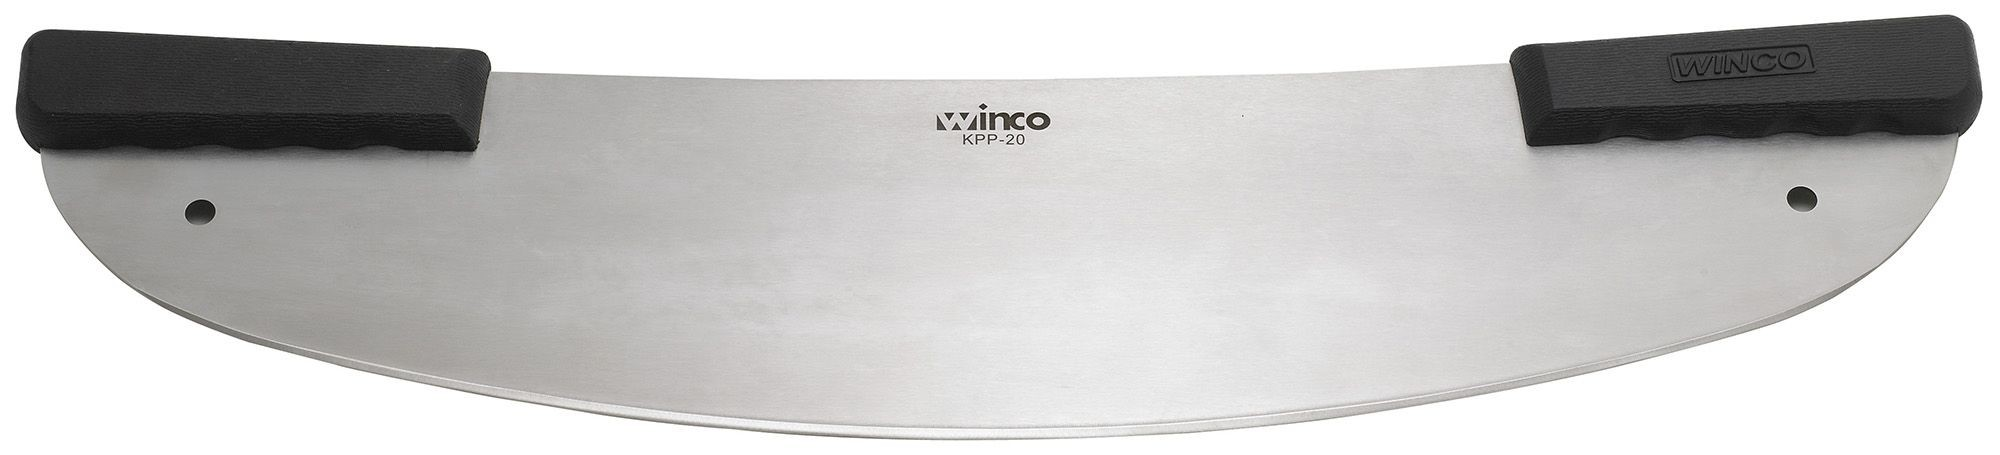 Winco KPP-20 Rocker Pizza Knife with Polypropylene Handle 20""